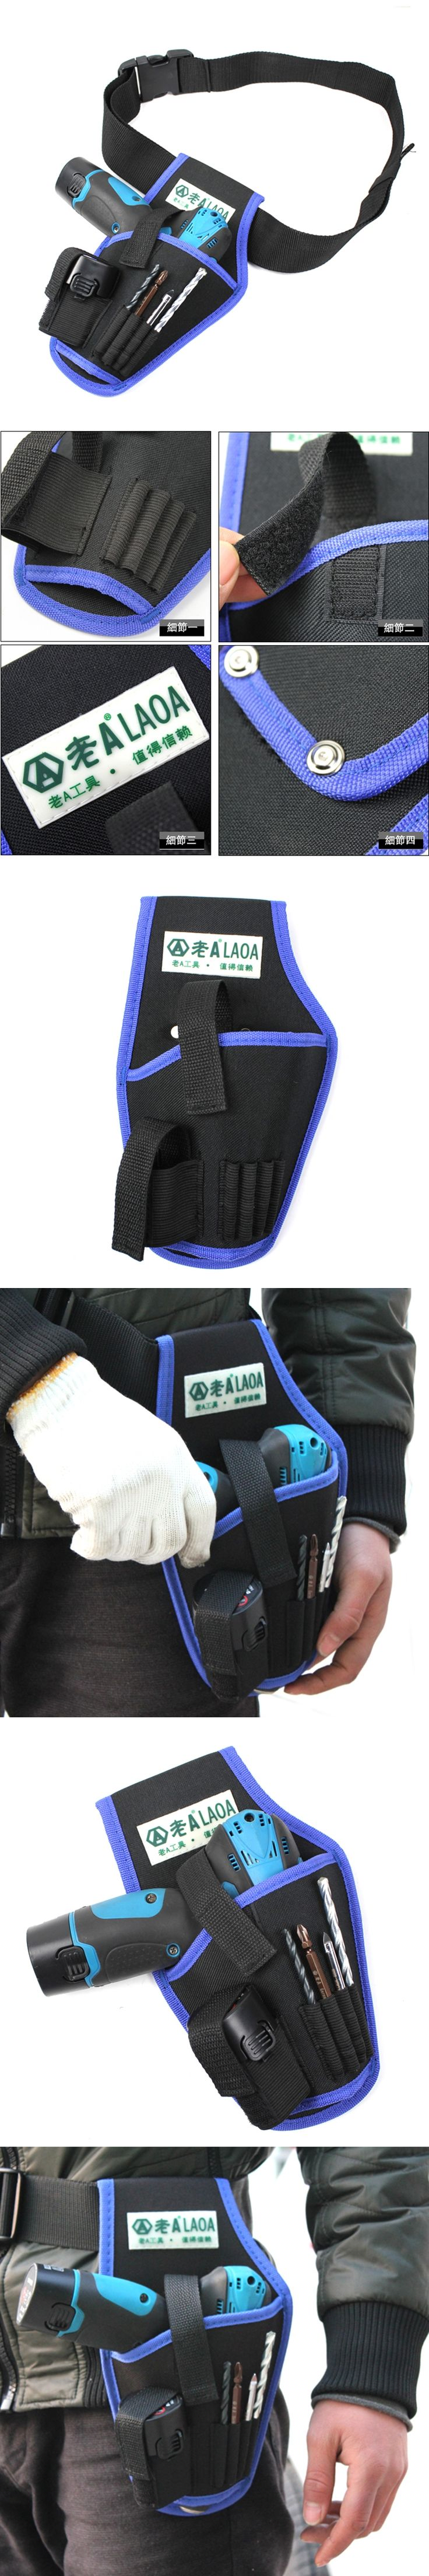 LAOA New High Quality Electric Drill Bag Portable Professional electrician Waist Bag Household electric drill package